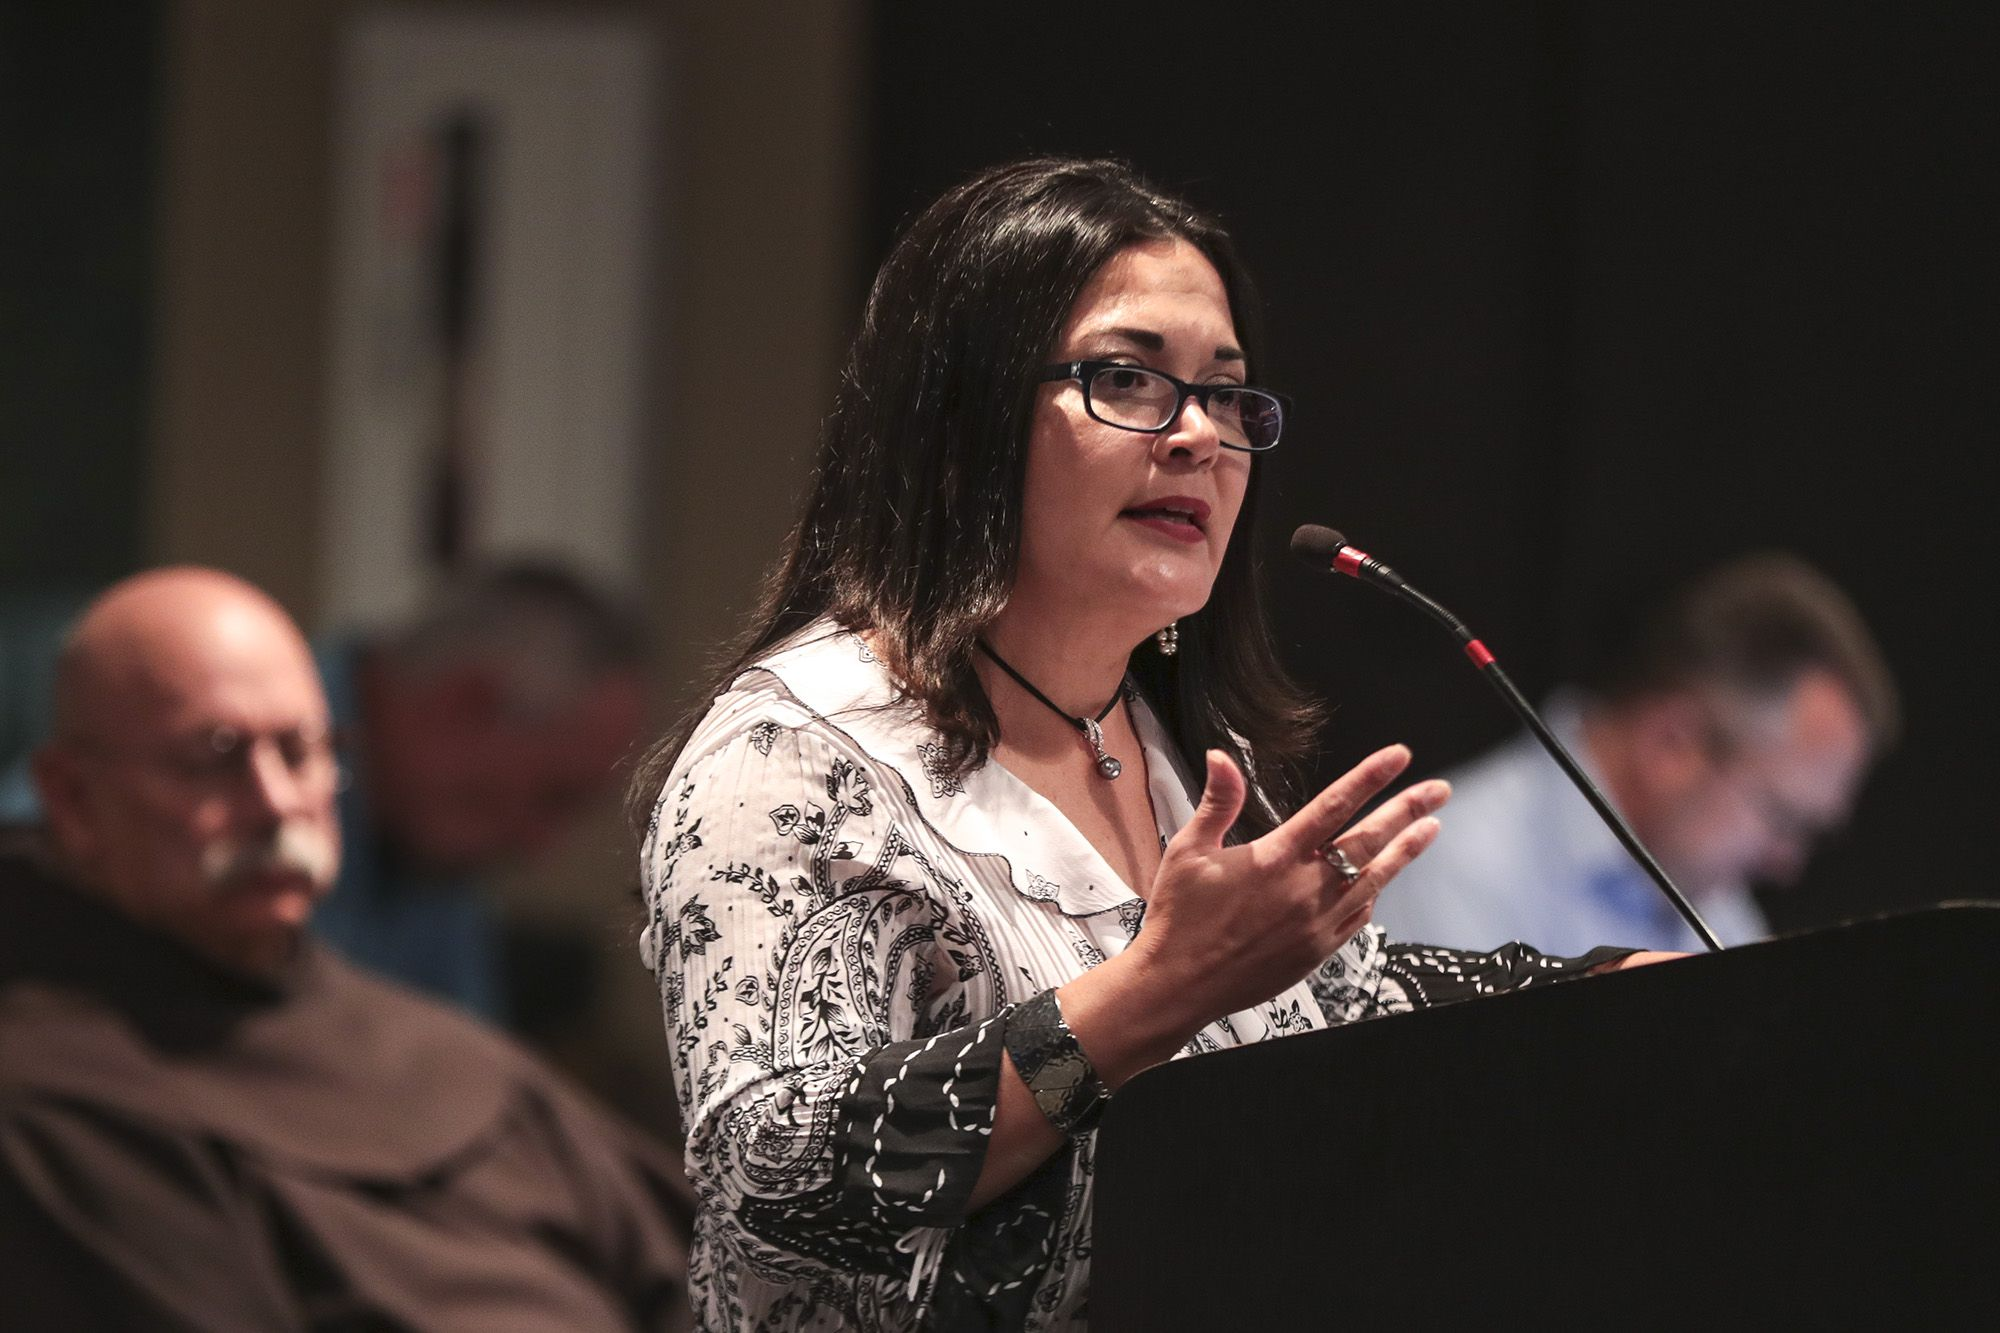 Joliet Township Clerk Alicia Morales speaks during public comment on Tuesday, Aug. 17, 2021, at Joliet City Hall in Joliet, Ill.